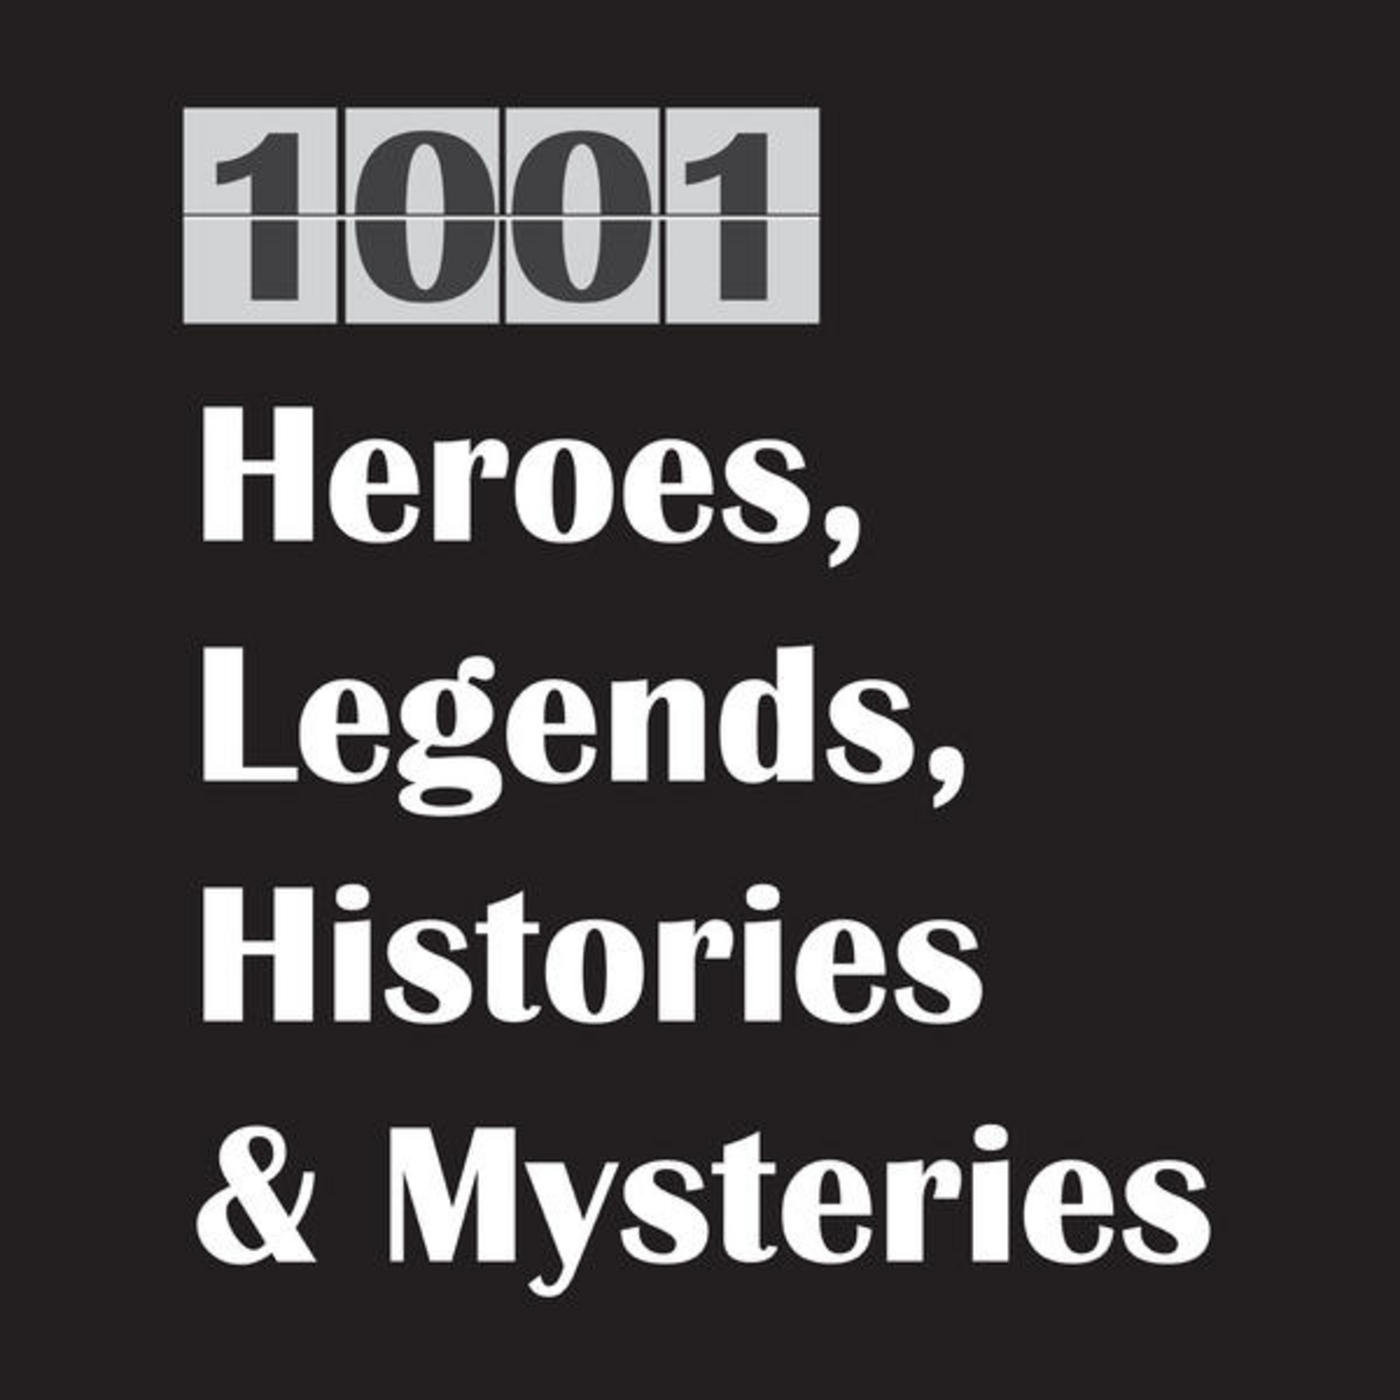 1001 Heroes, Legends, Histories & Mysteries